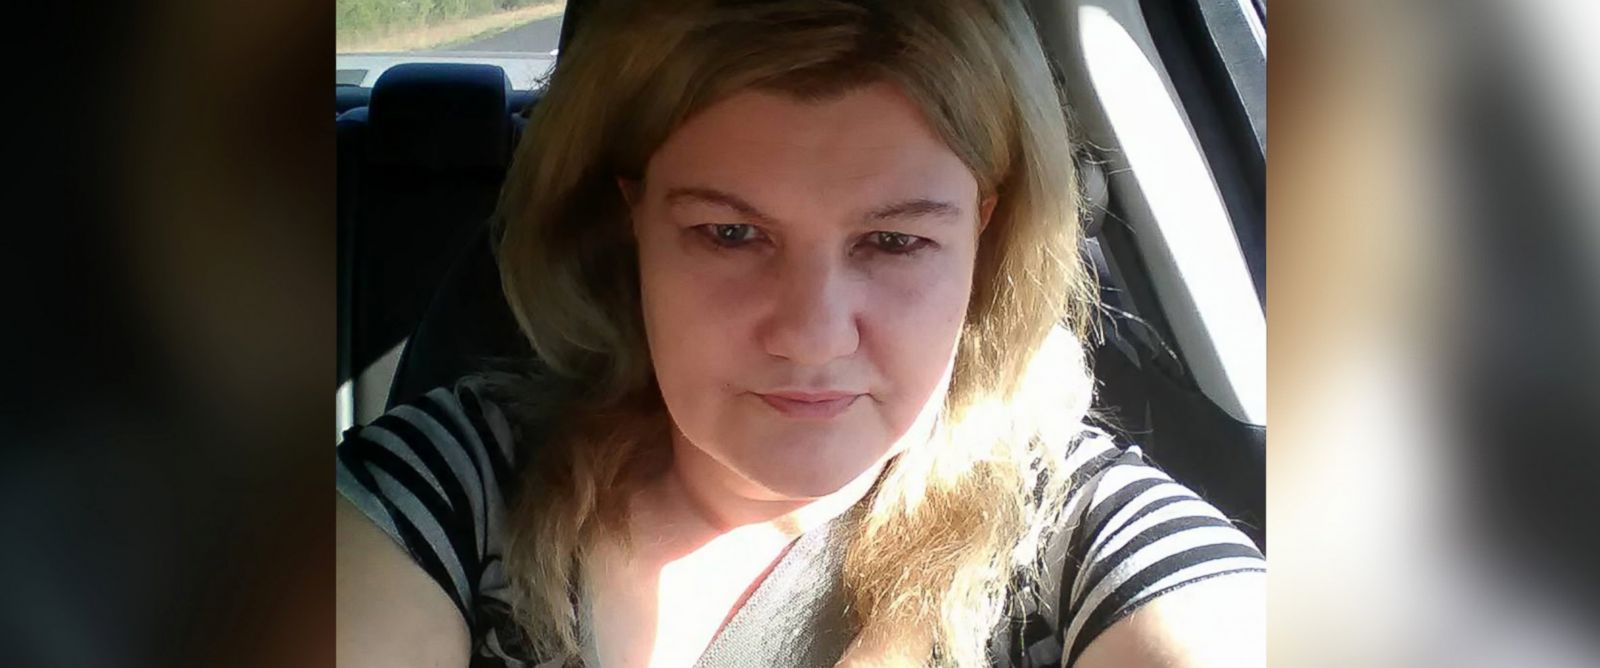 PHOTO: Malissa Ancona, wife of slain KKK leader Frank Ancona, is seen in an undated profile photo posted to her Facebook account.